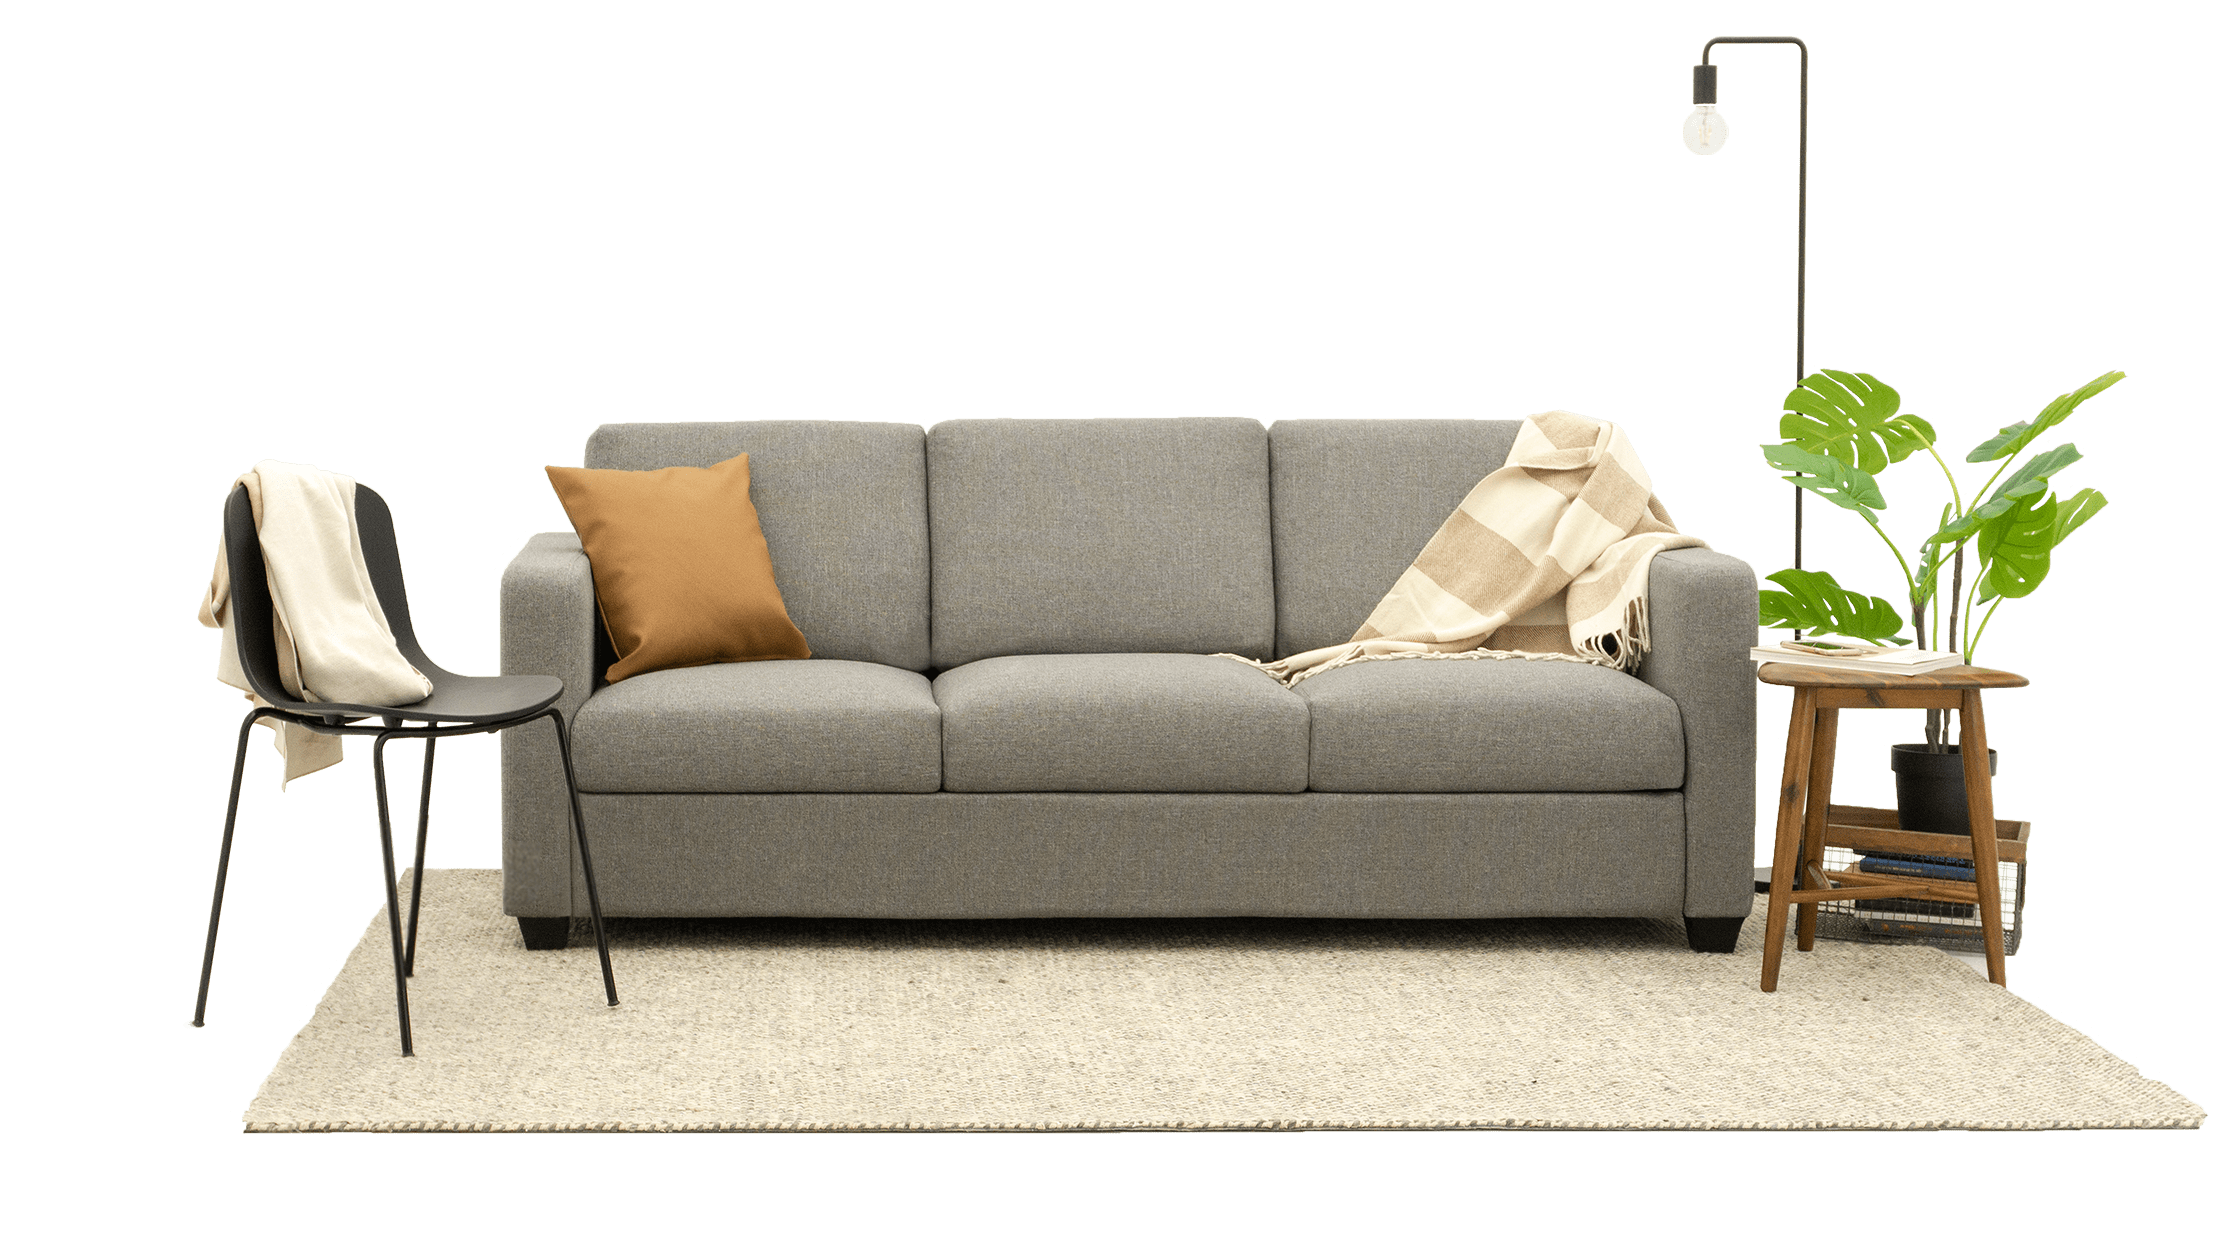 Sofa Service Pivot Subscriptions